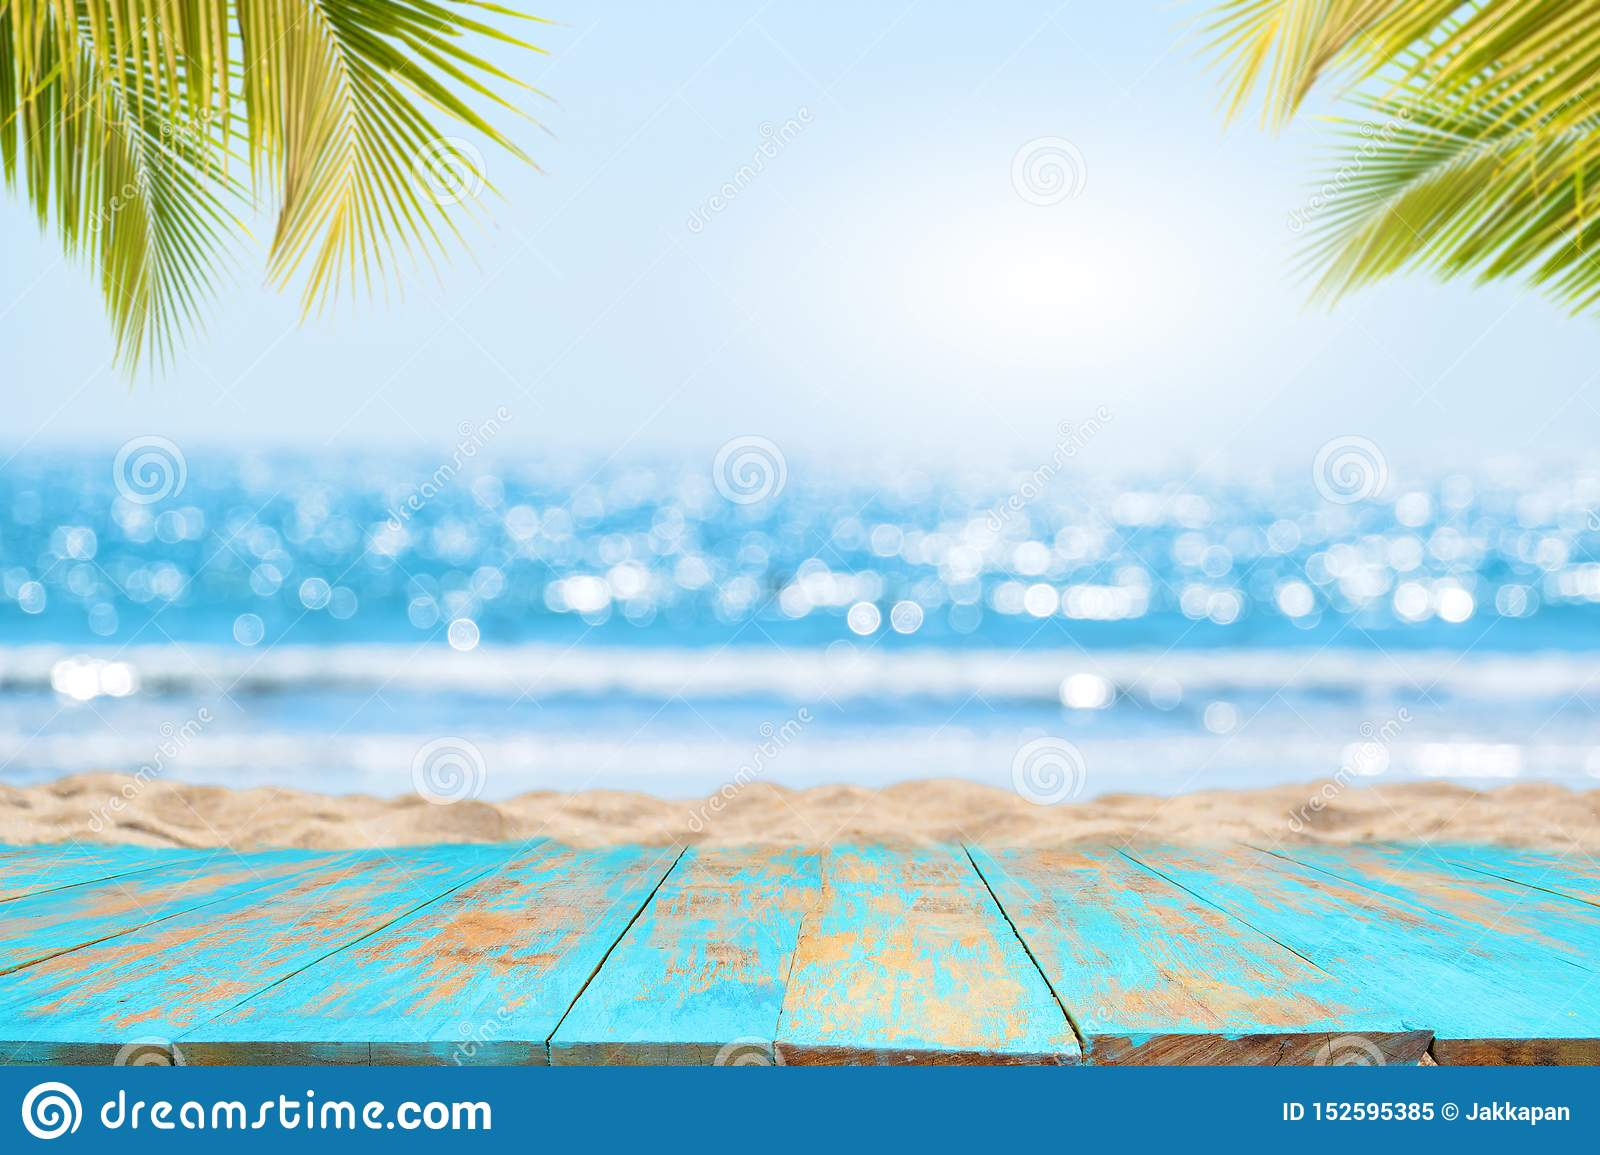 Empty Ready For Your Product Display Montage Summer Vacation Background Concept Stock Image Image Of Floor Plank 152595385